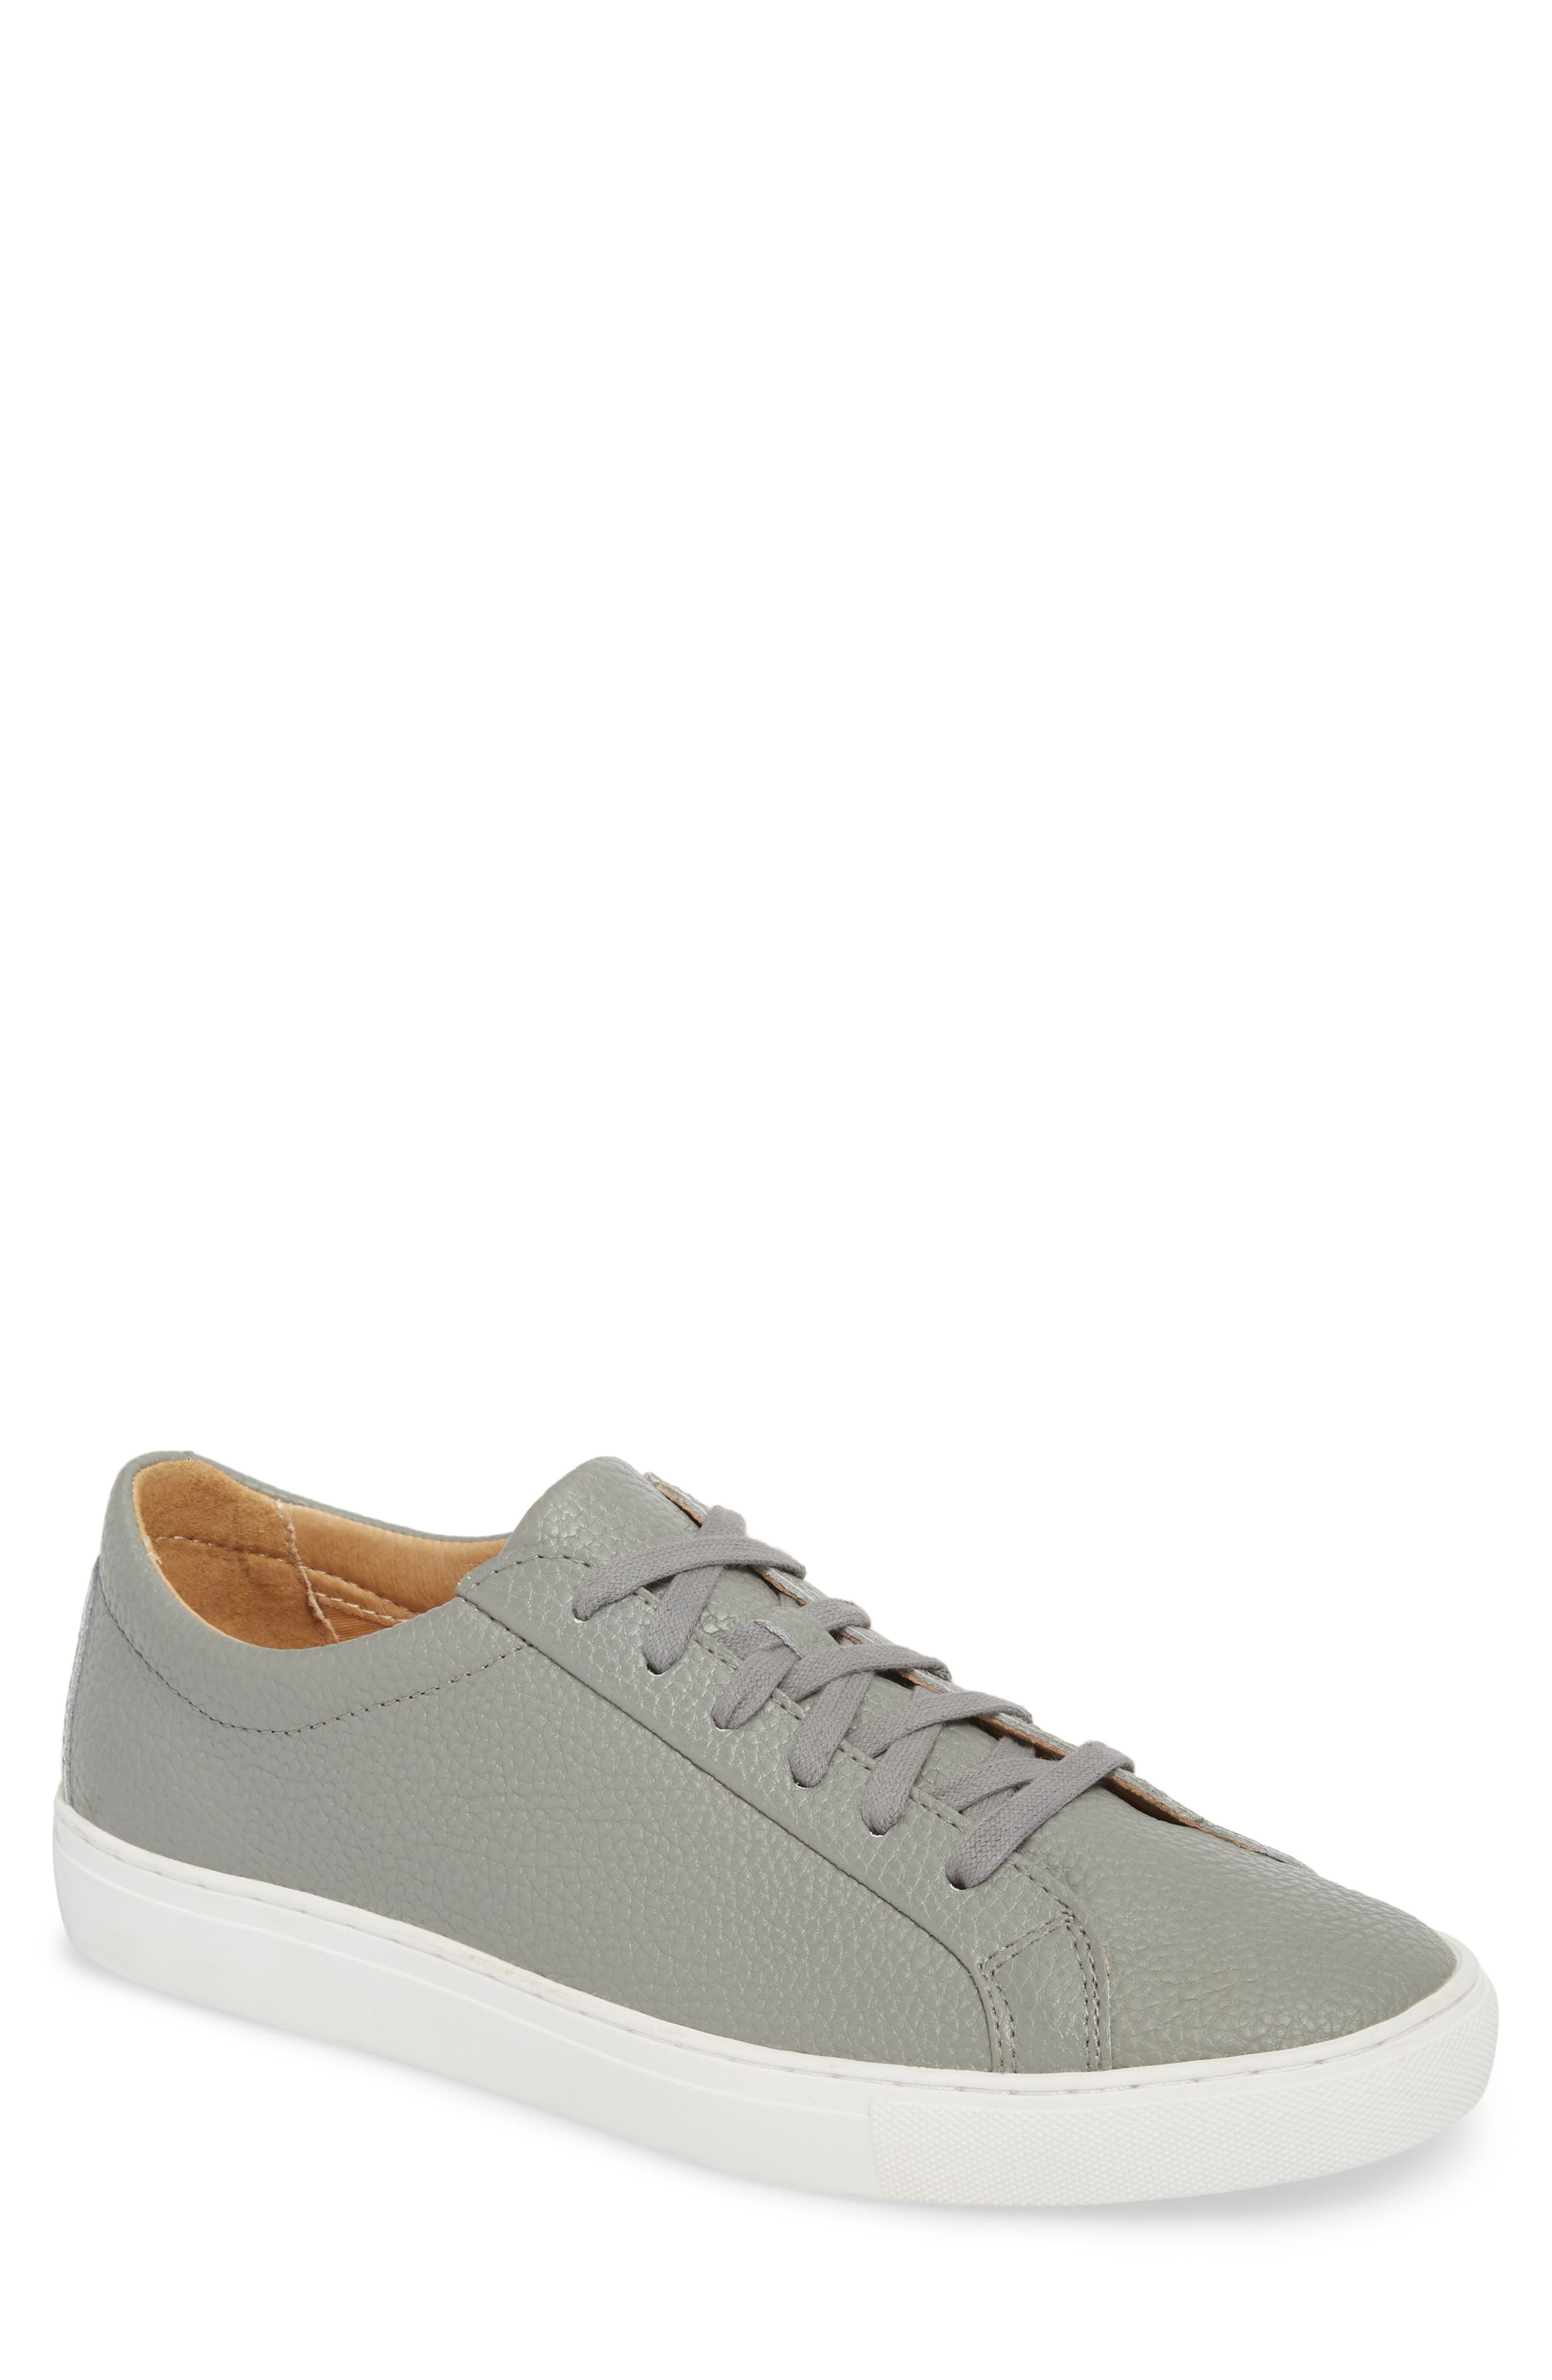 Kennedy Low Top Sneaker,                         Main,                         color, RIVER ROCK LEATHER